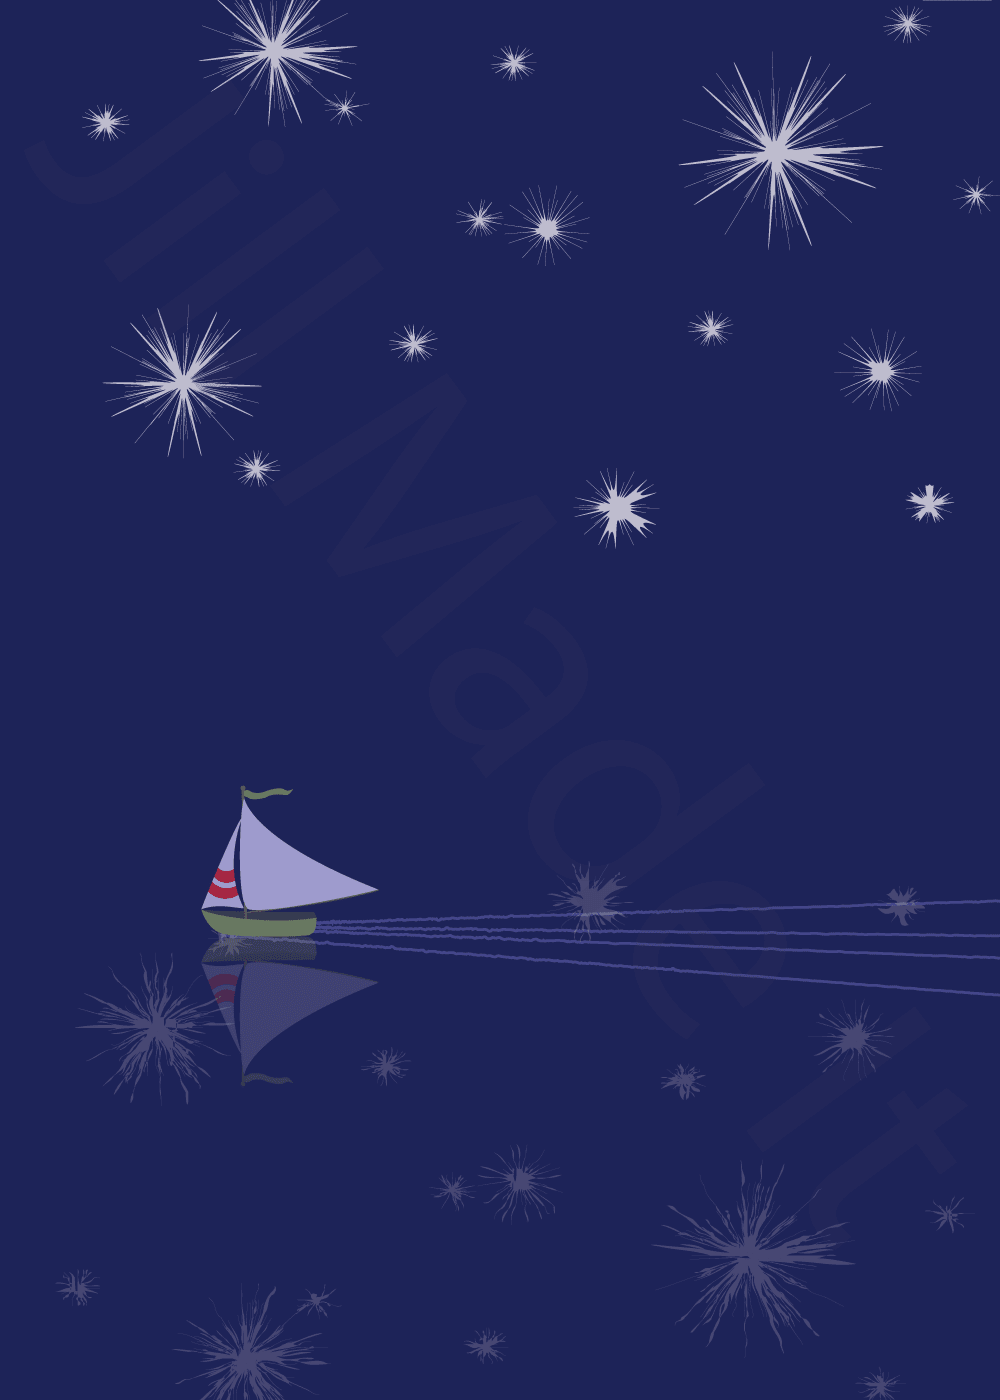 Starry Night Sailboat